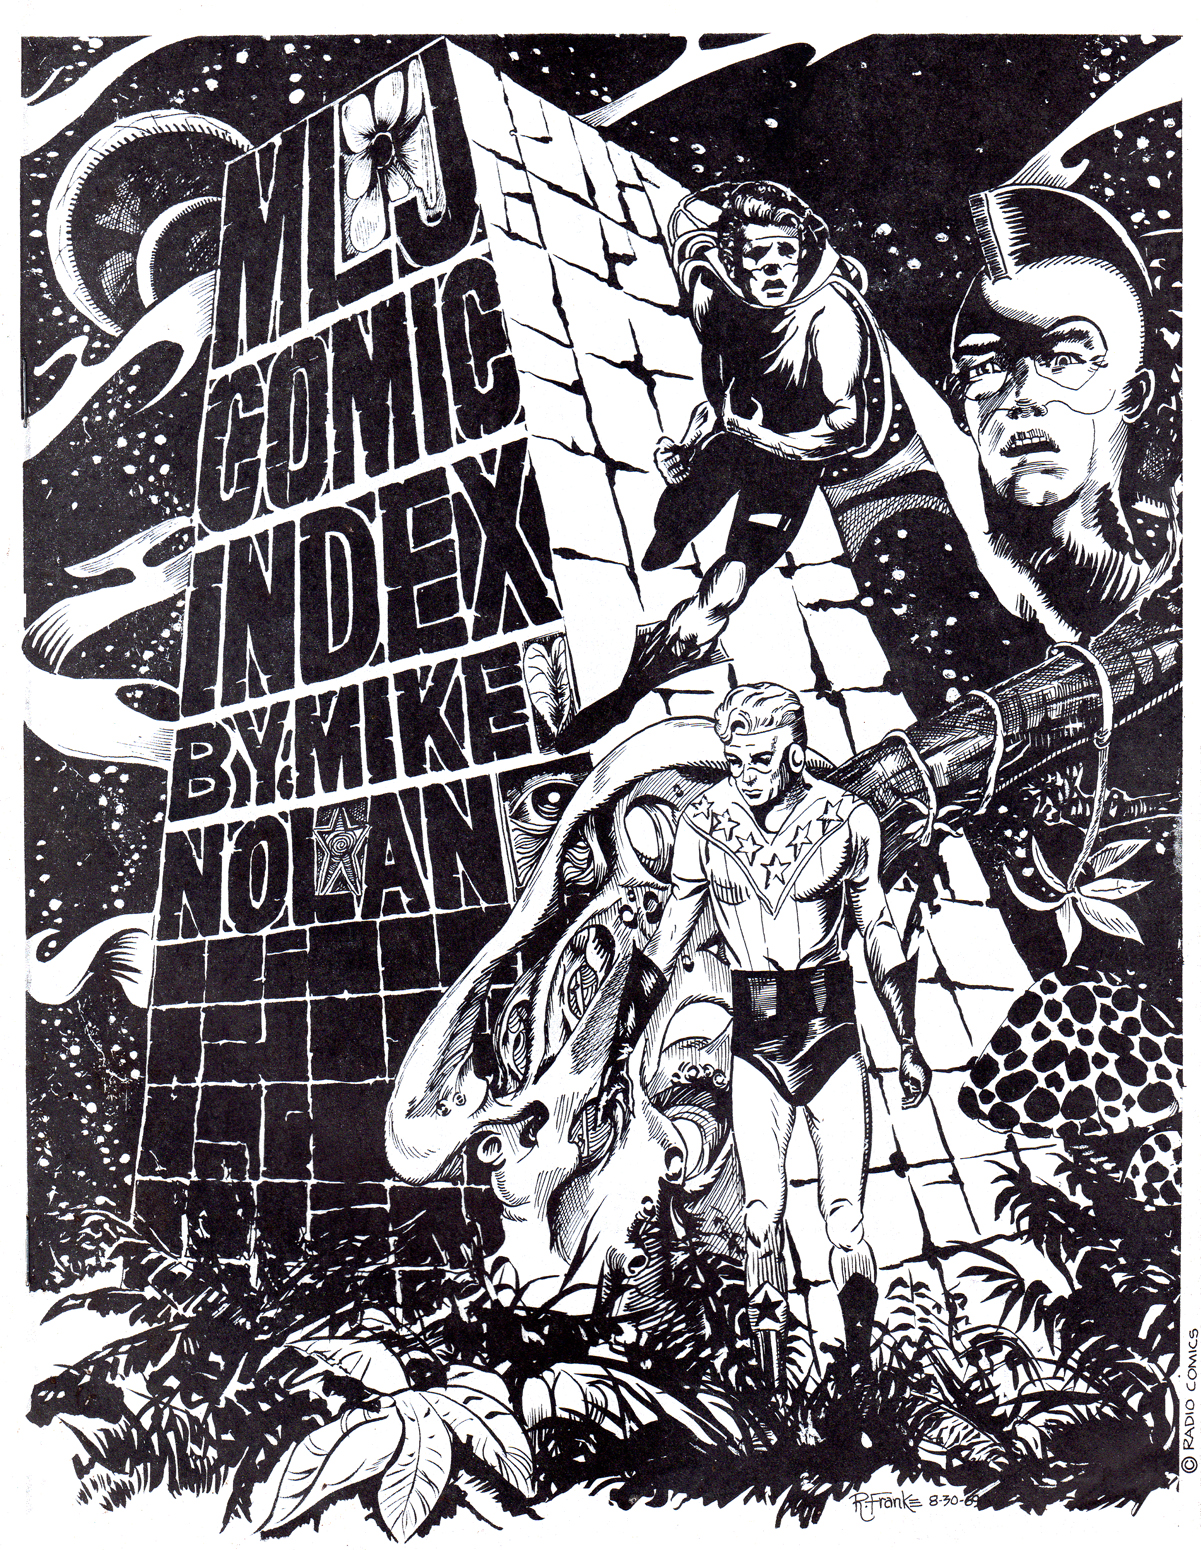 MLJ Index fanzine cover by Rudi Franke